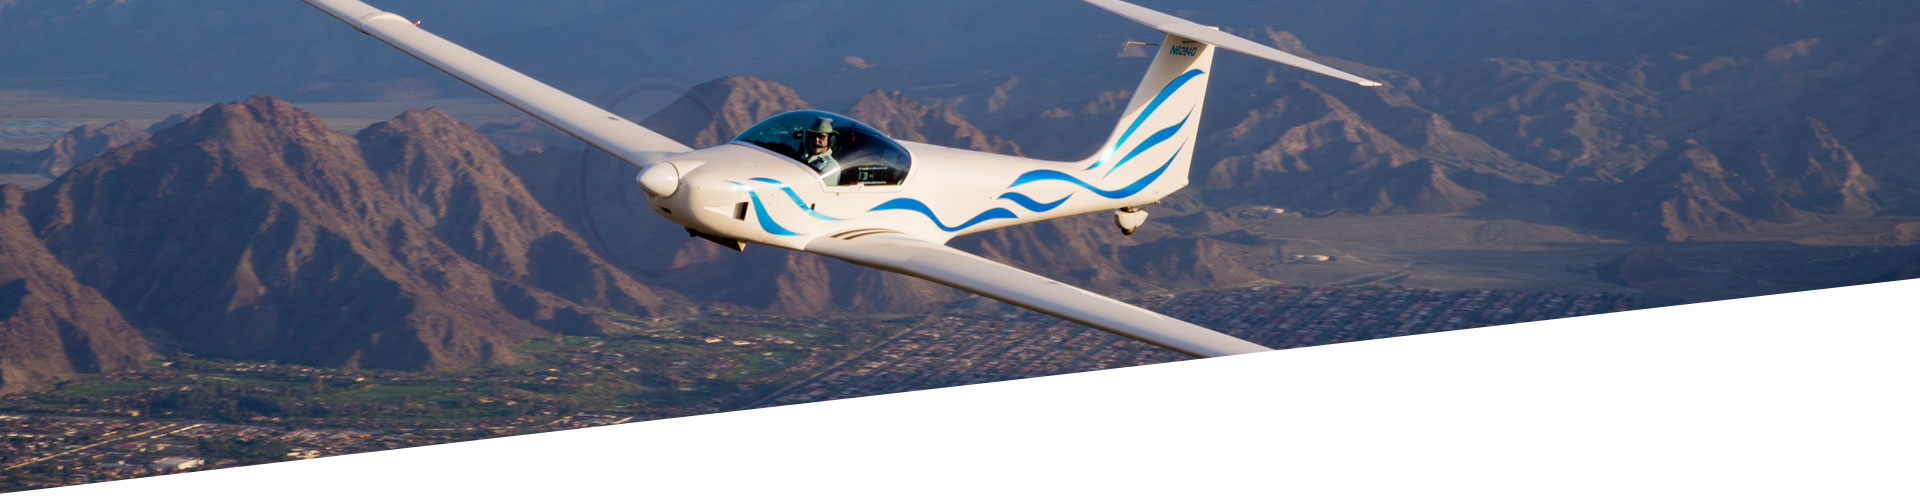 glider-rides-palm-springs